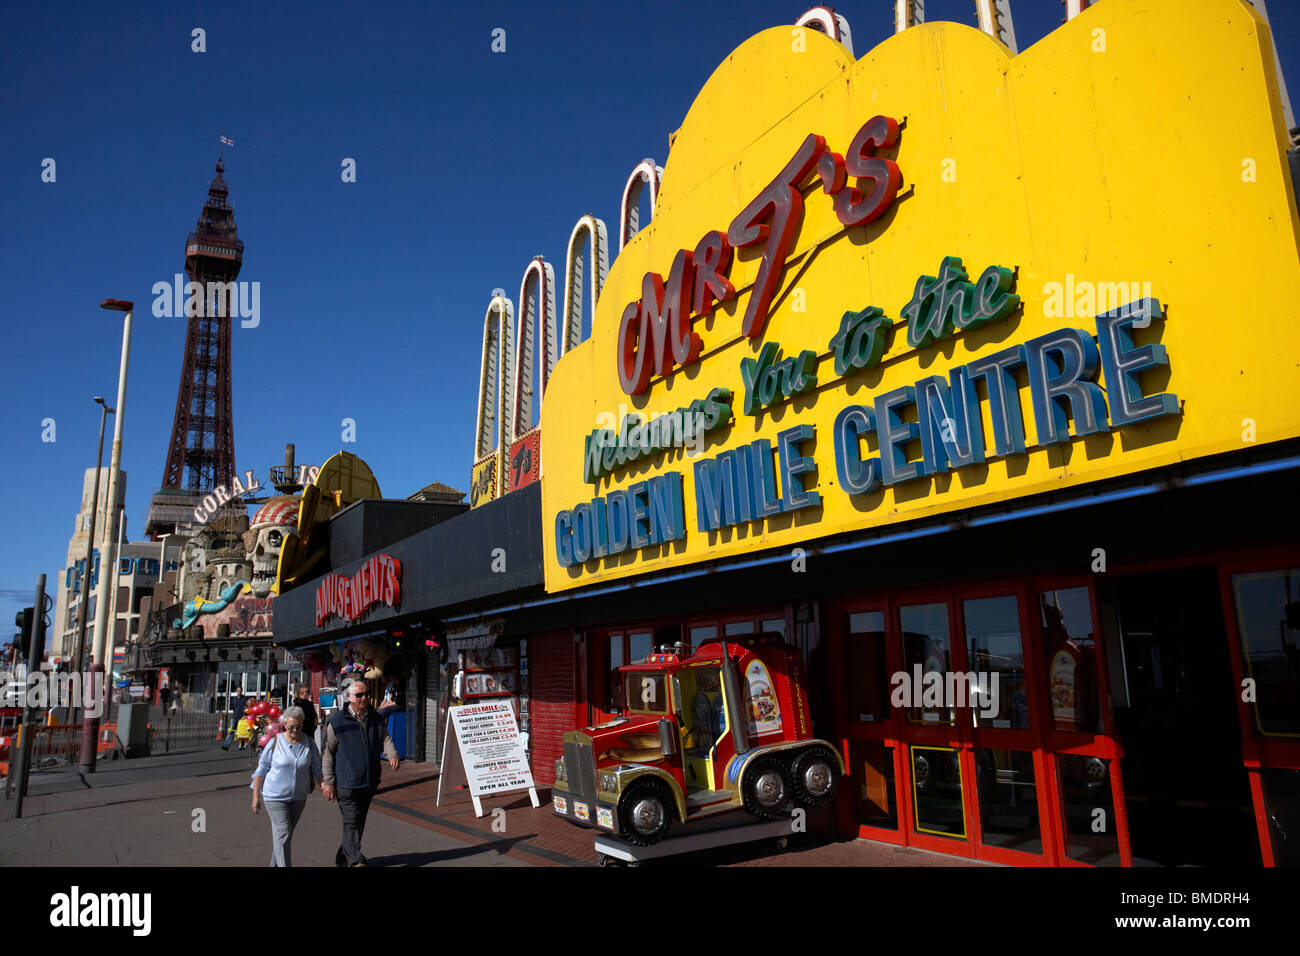 Blackpool golden mile centre and tower on the seafront promenade lancashire england uk - Stock Image